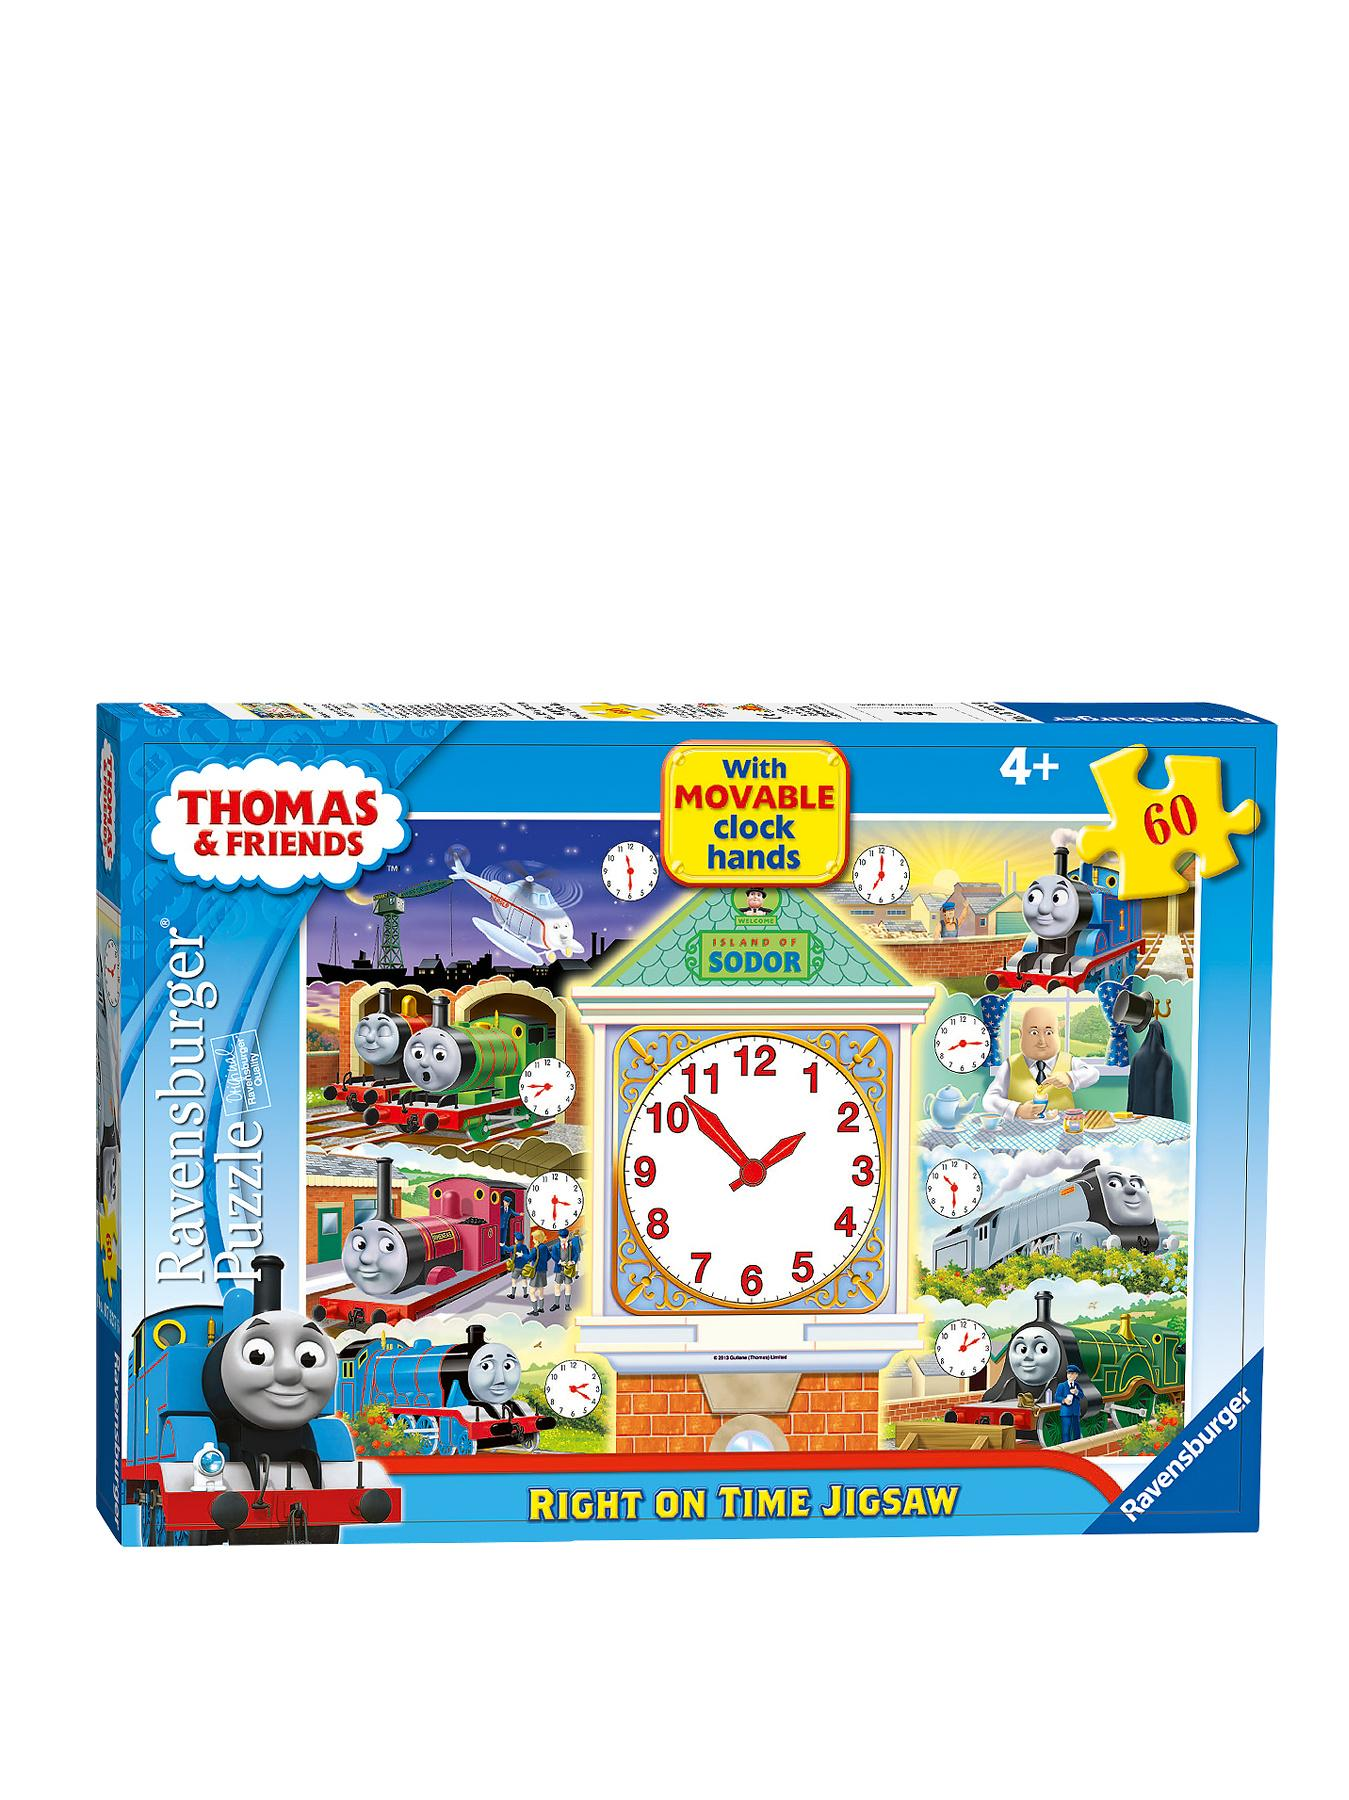 Thomas & Friends 2 in a Box Jigsaw Puzzles